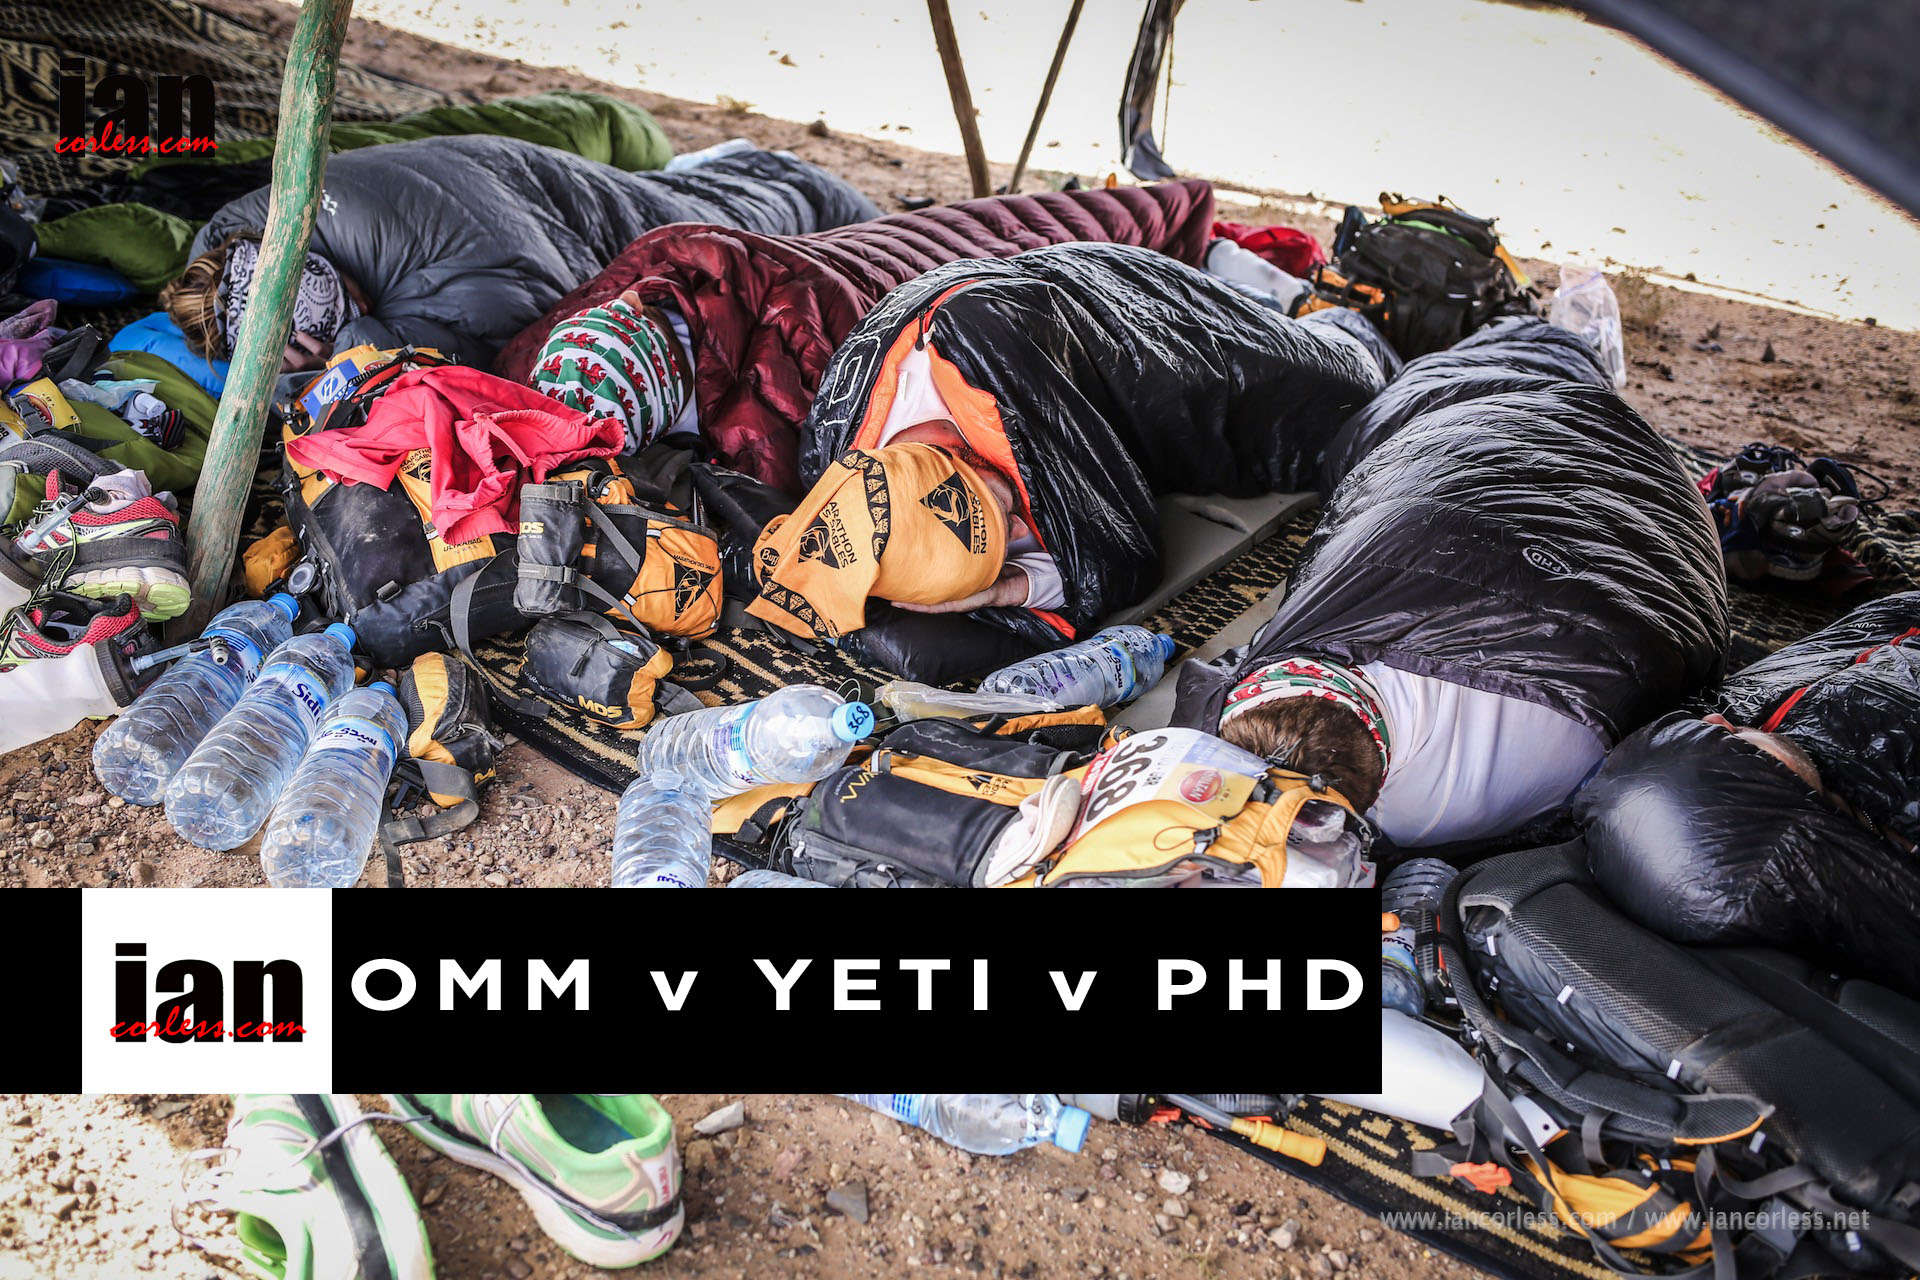 REVIEW: PHD v YETI v OMM – Sleeping Bag Review